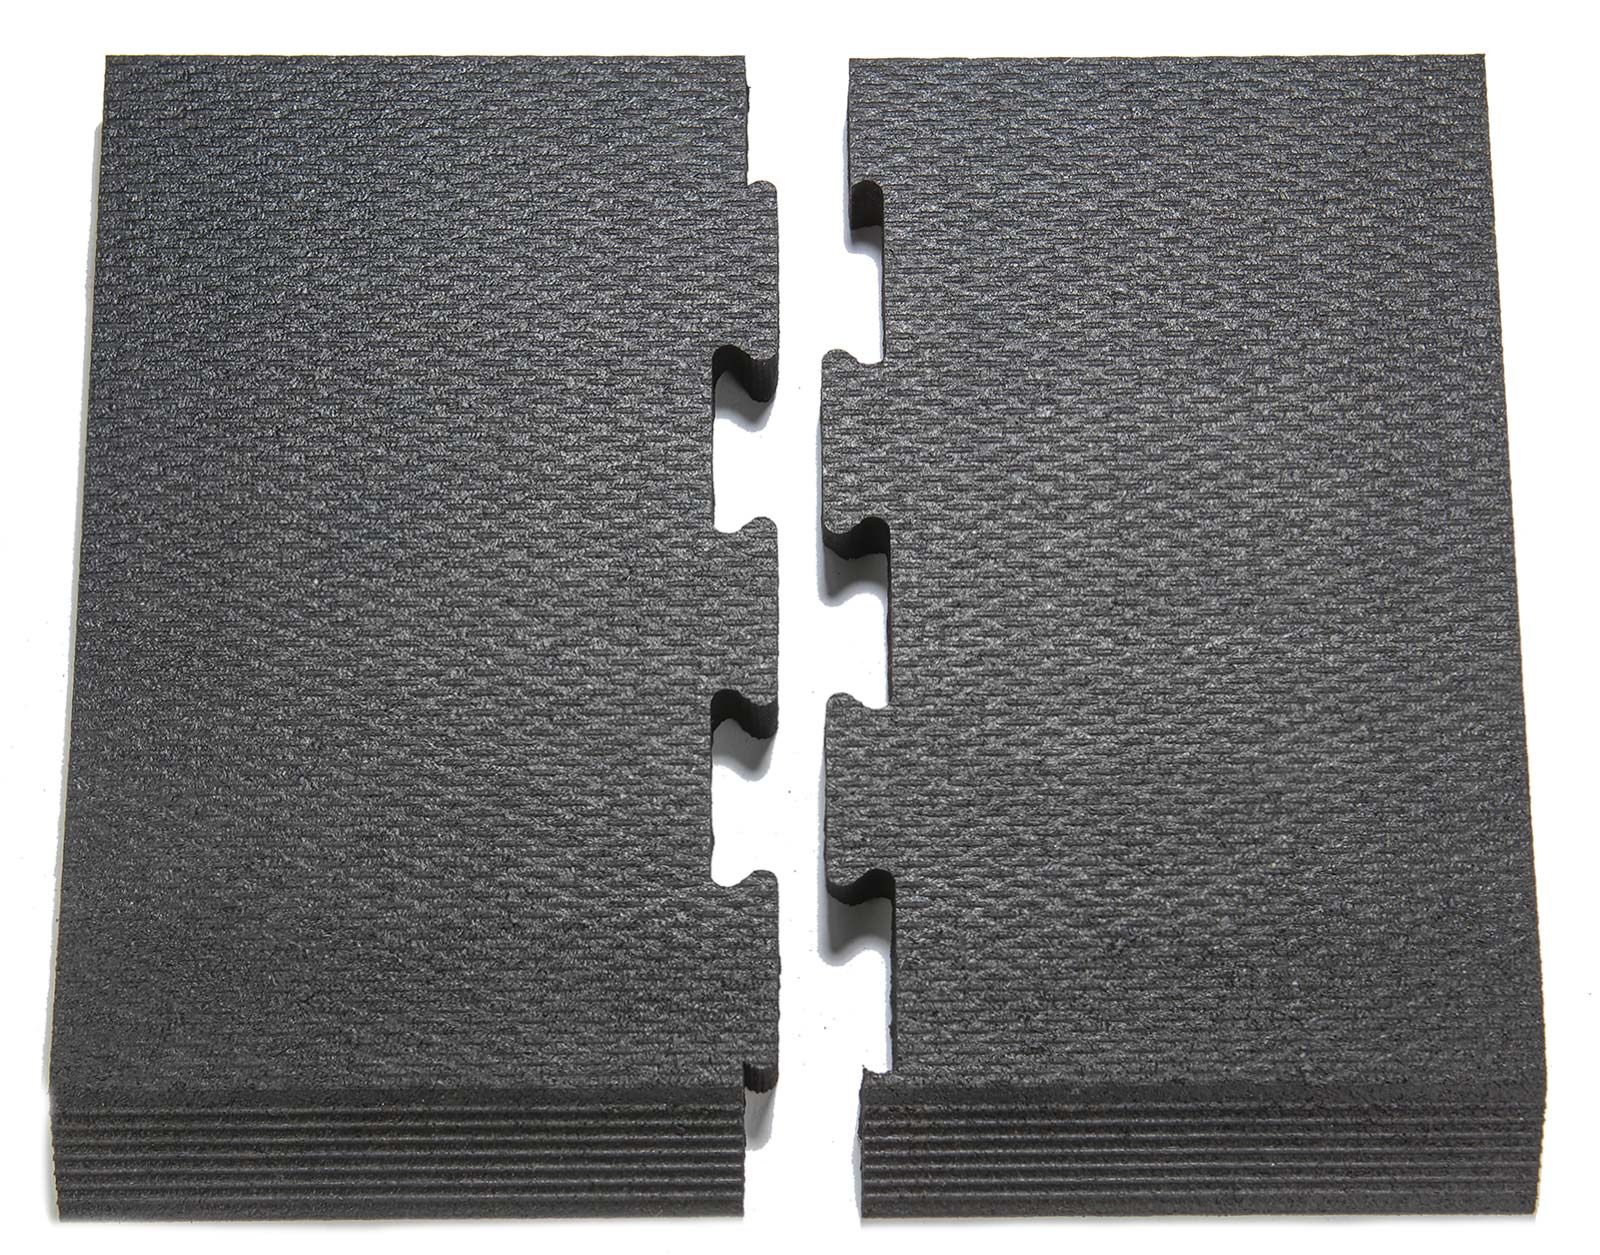 Amarco Products Olympia Tile 2 X 2 Vulcanized